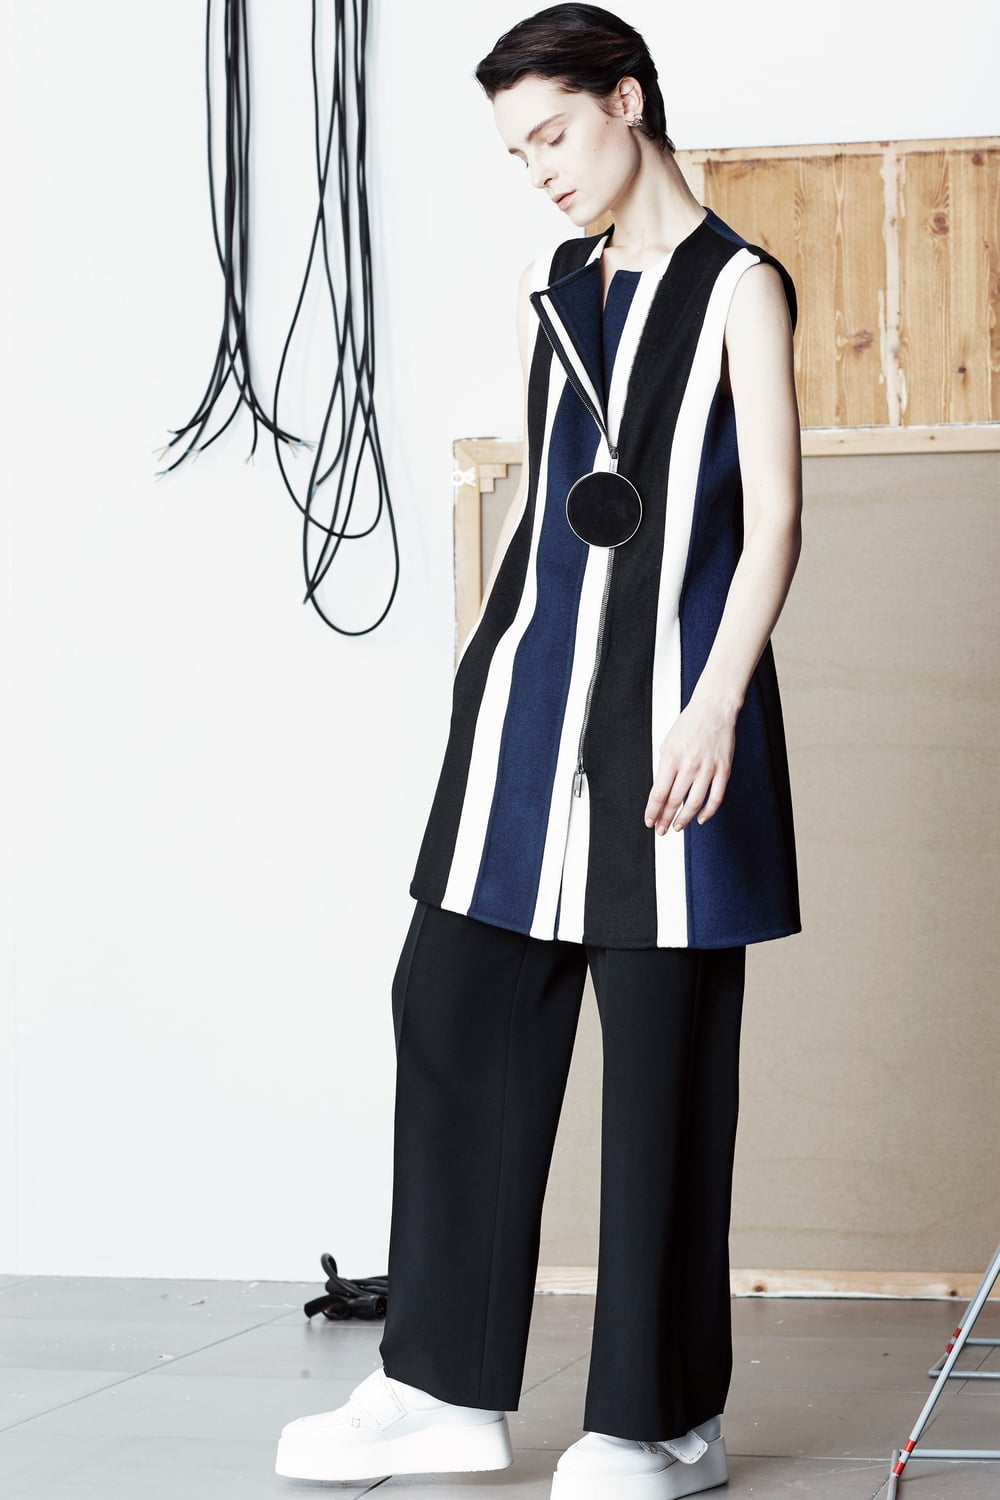 sportmax-pre-fall-2016-lookbook-03.jpg